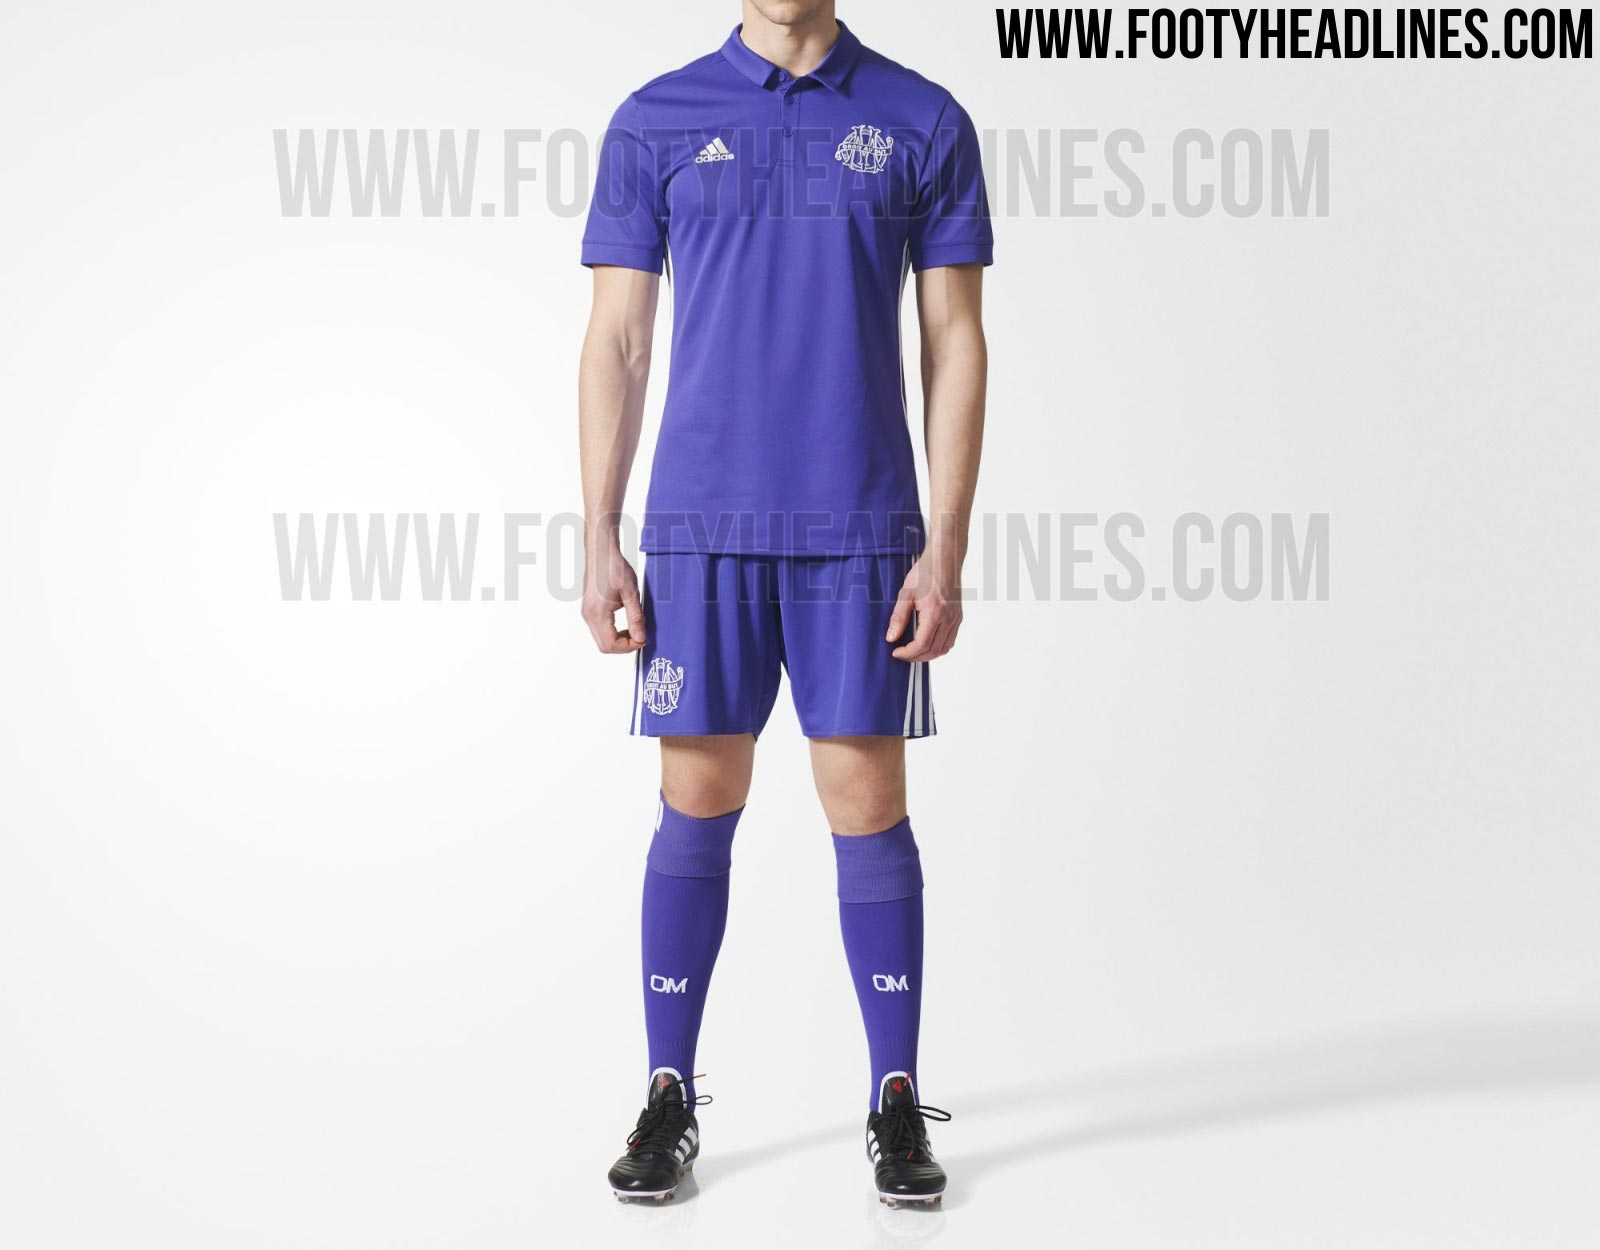 https://image.ibb.co/kyHr4F/Olympique_Marseille_third_kit_3.jpg